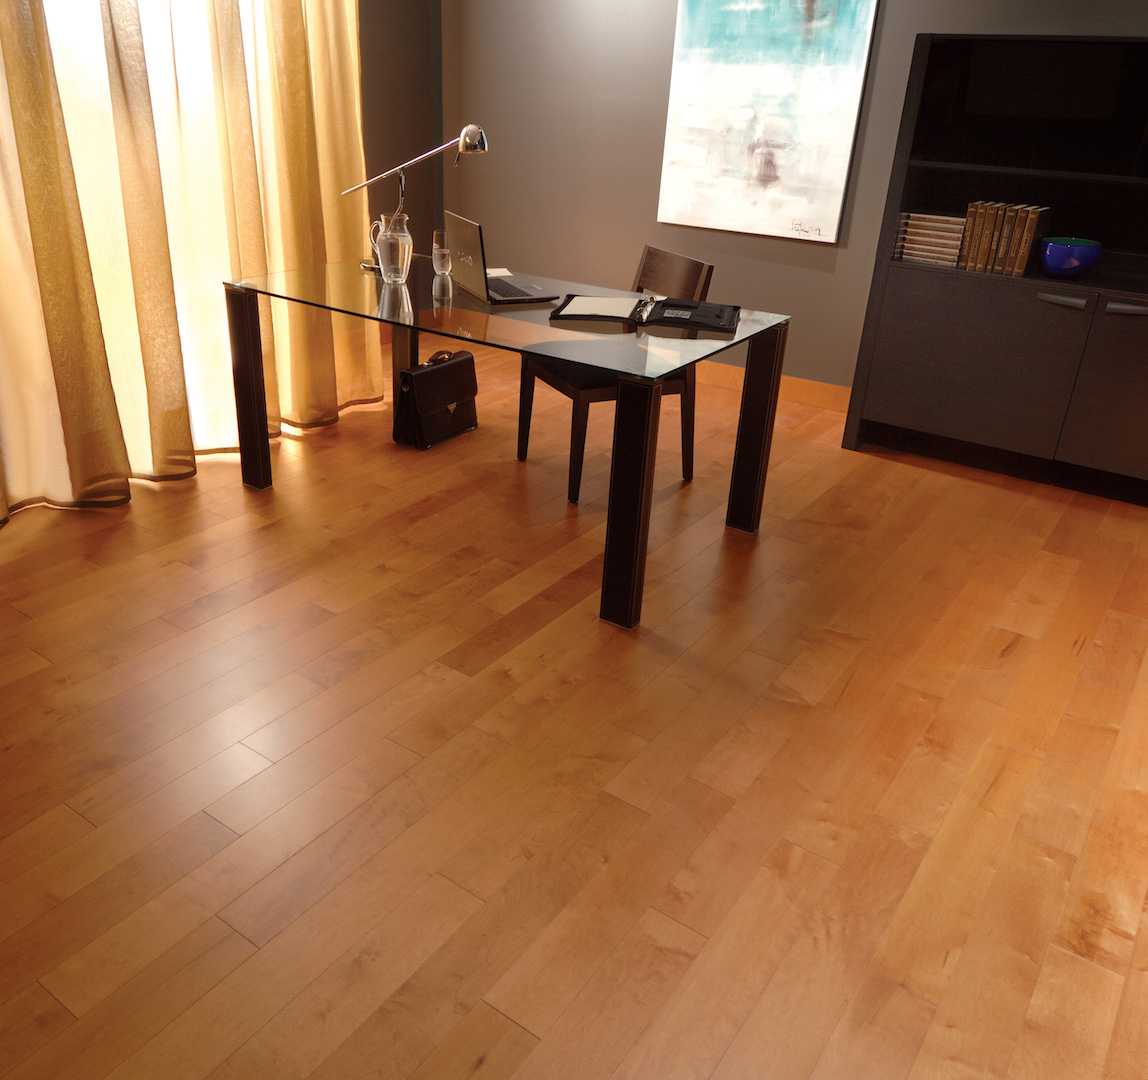 Vinyl flooring or linoleum floors tampa flooring company for Linoleum wood flooring